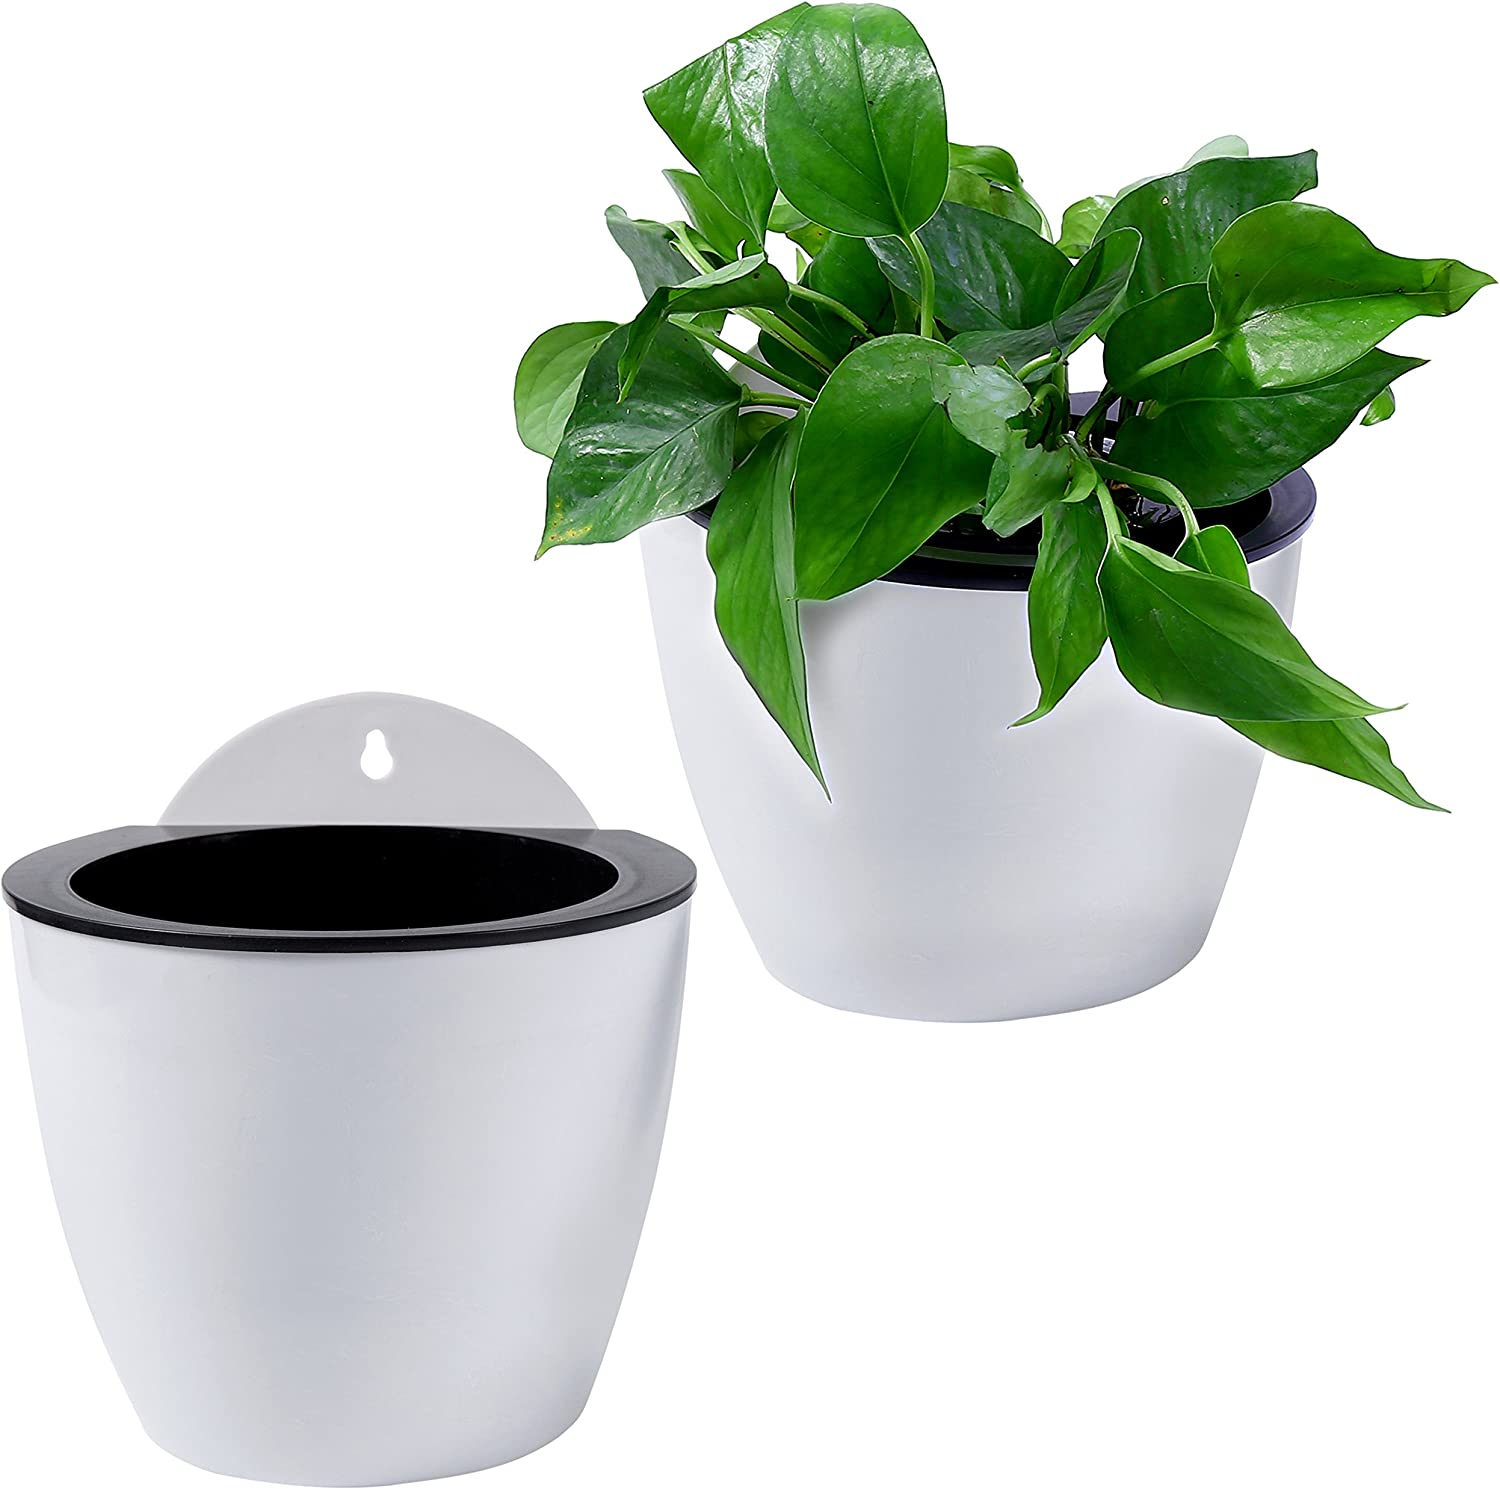 Durable Self-watering Plant Flower Pot Plastic Planter Wall Hanging Ornament N7